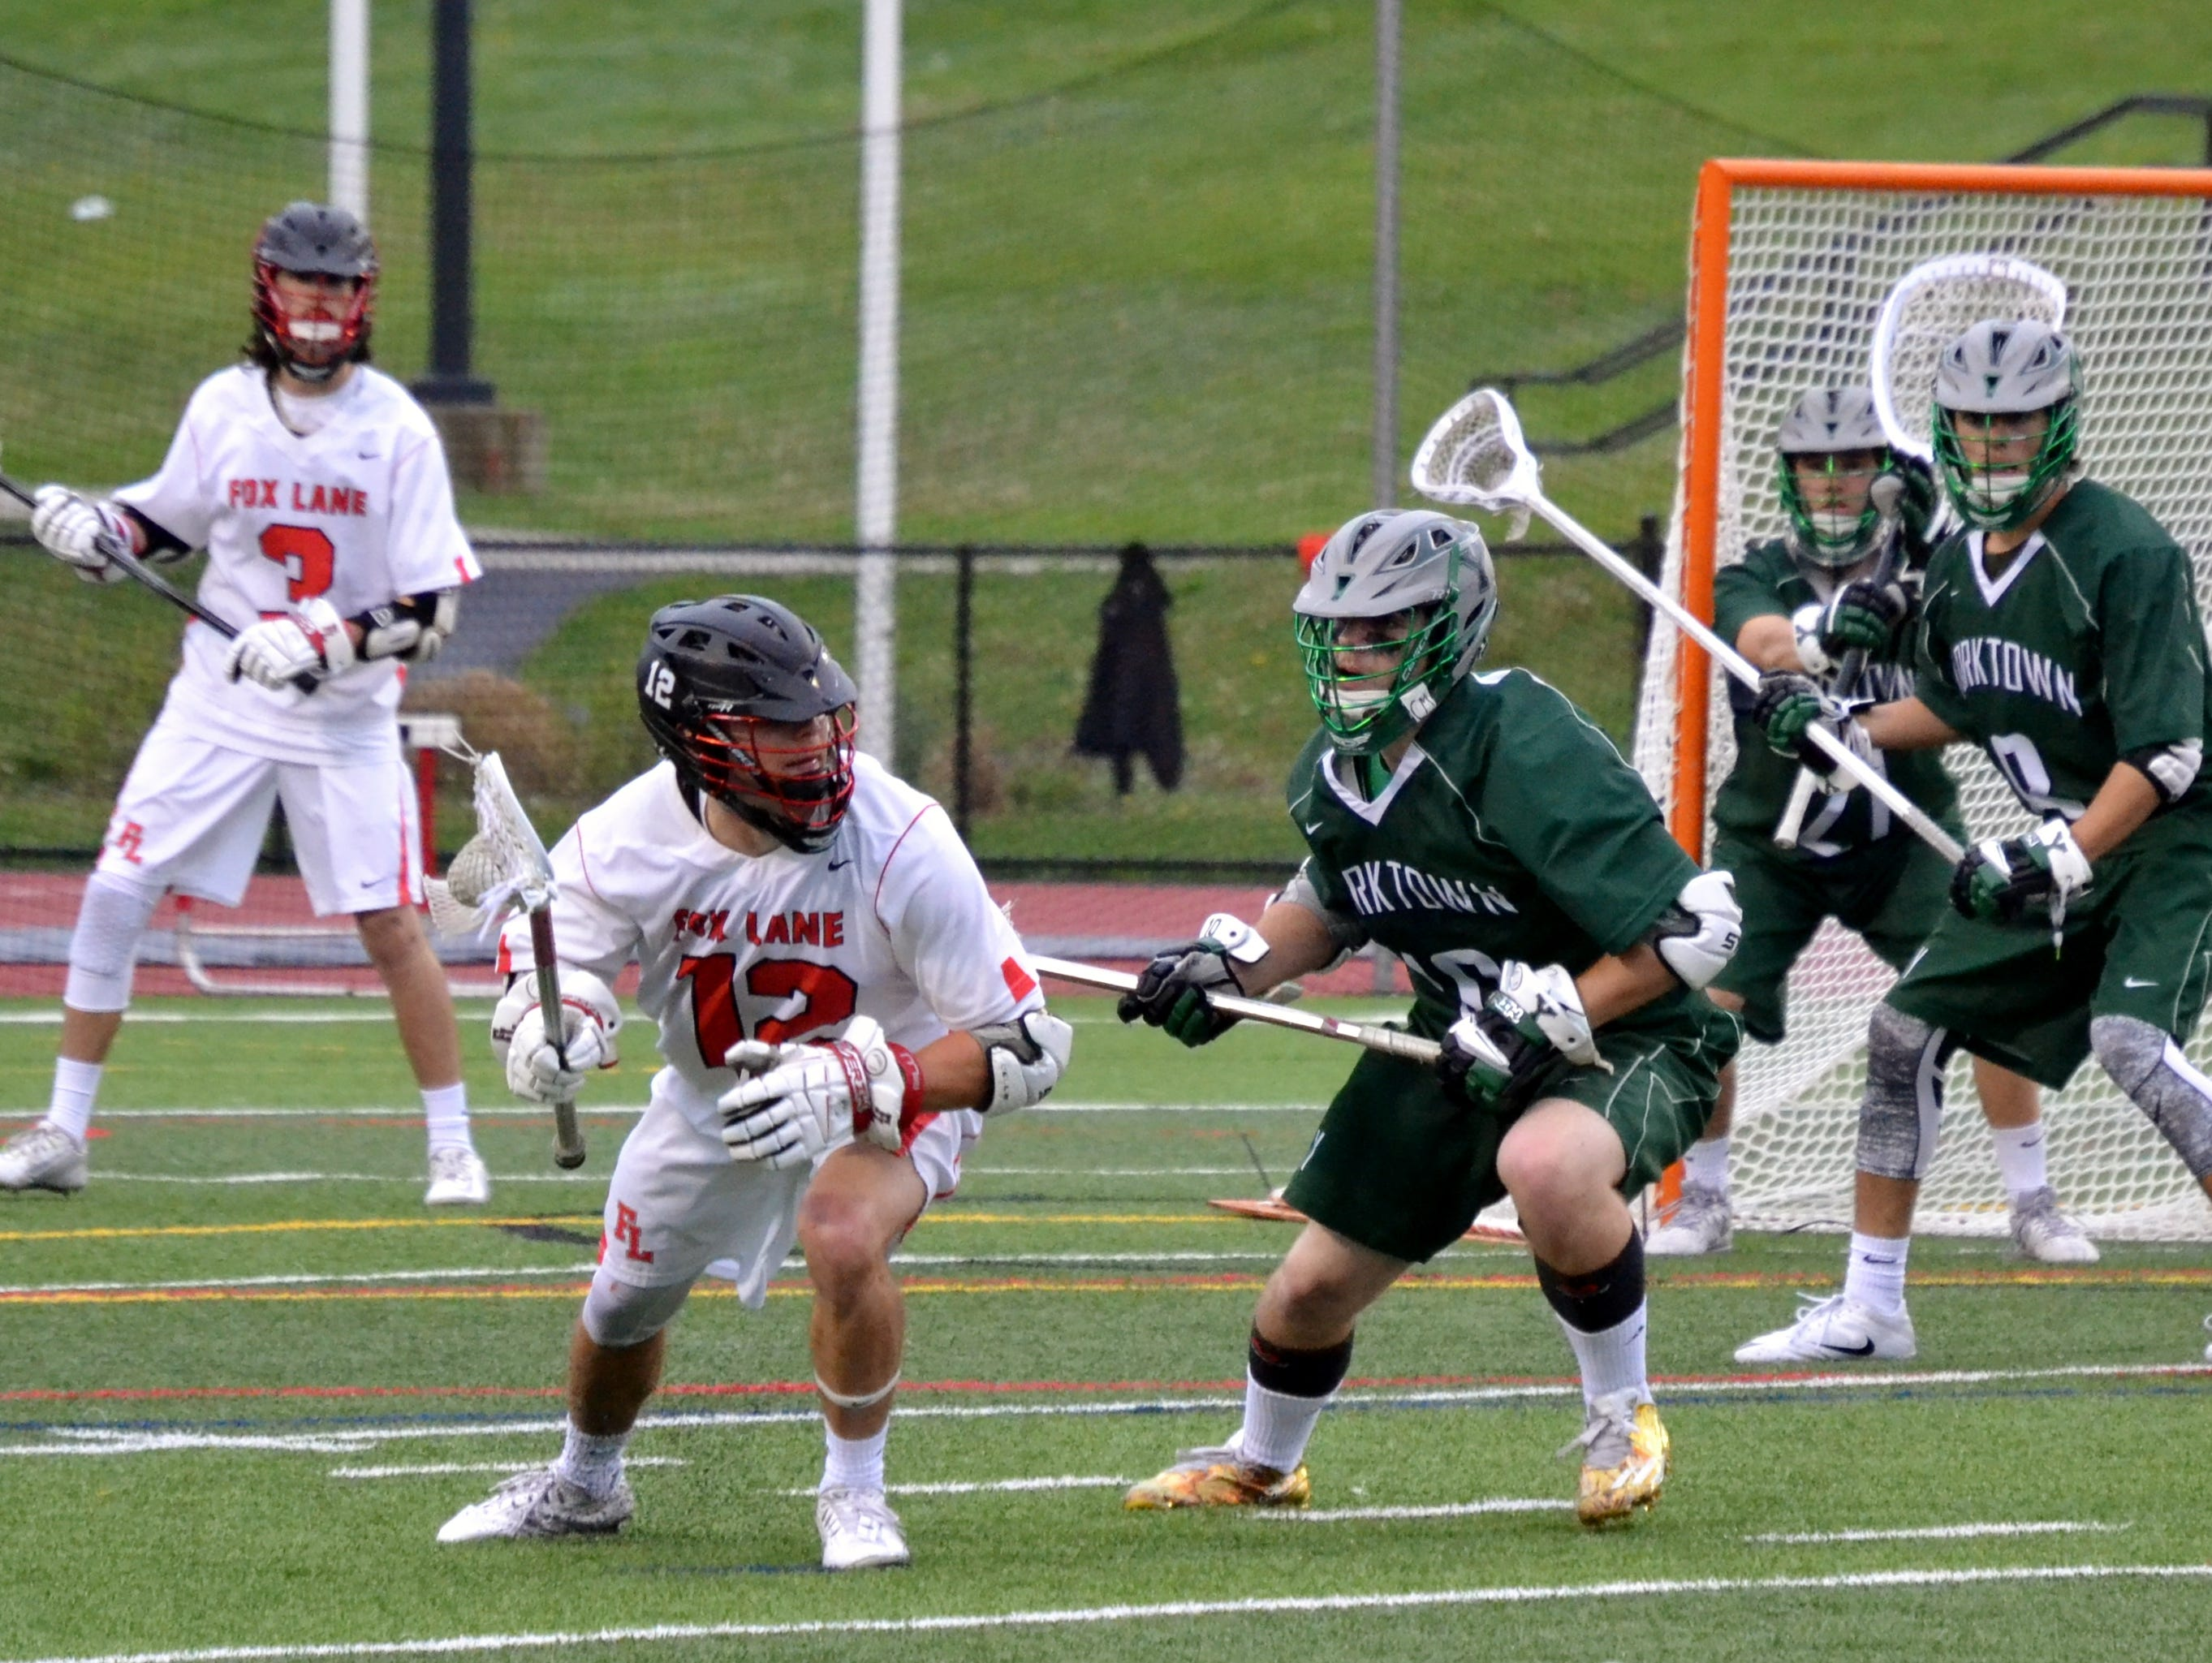 Fox Lane's Cullen Morgan spins, looking for room during an 8-6 loss to Yorktown on Thursday.